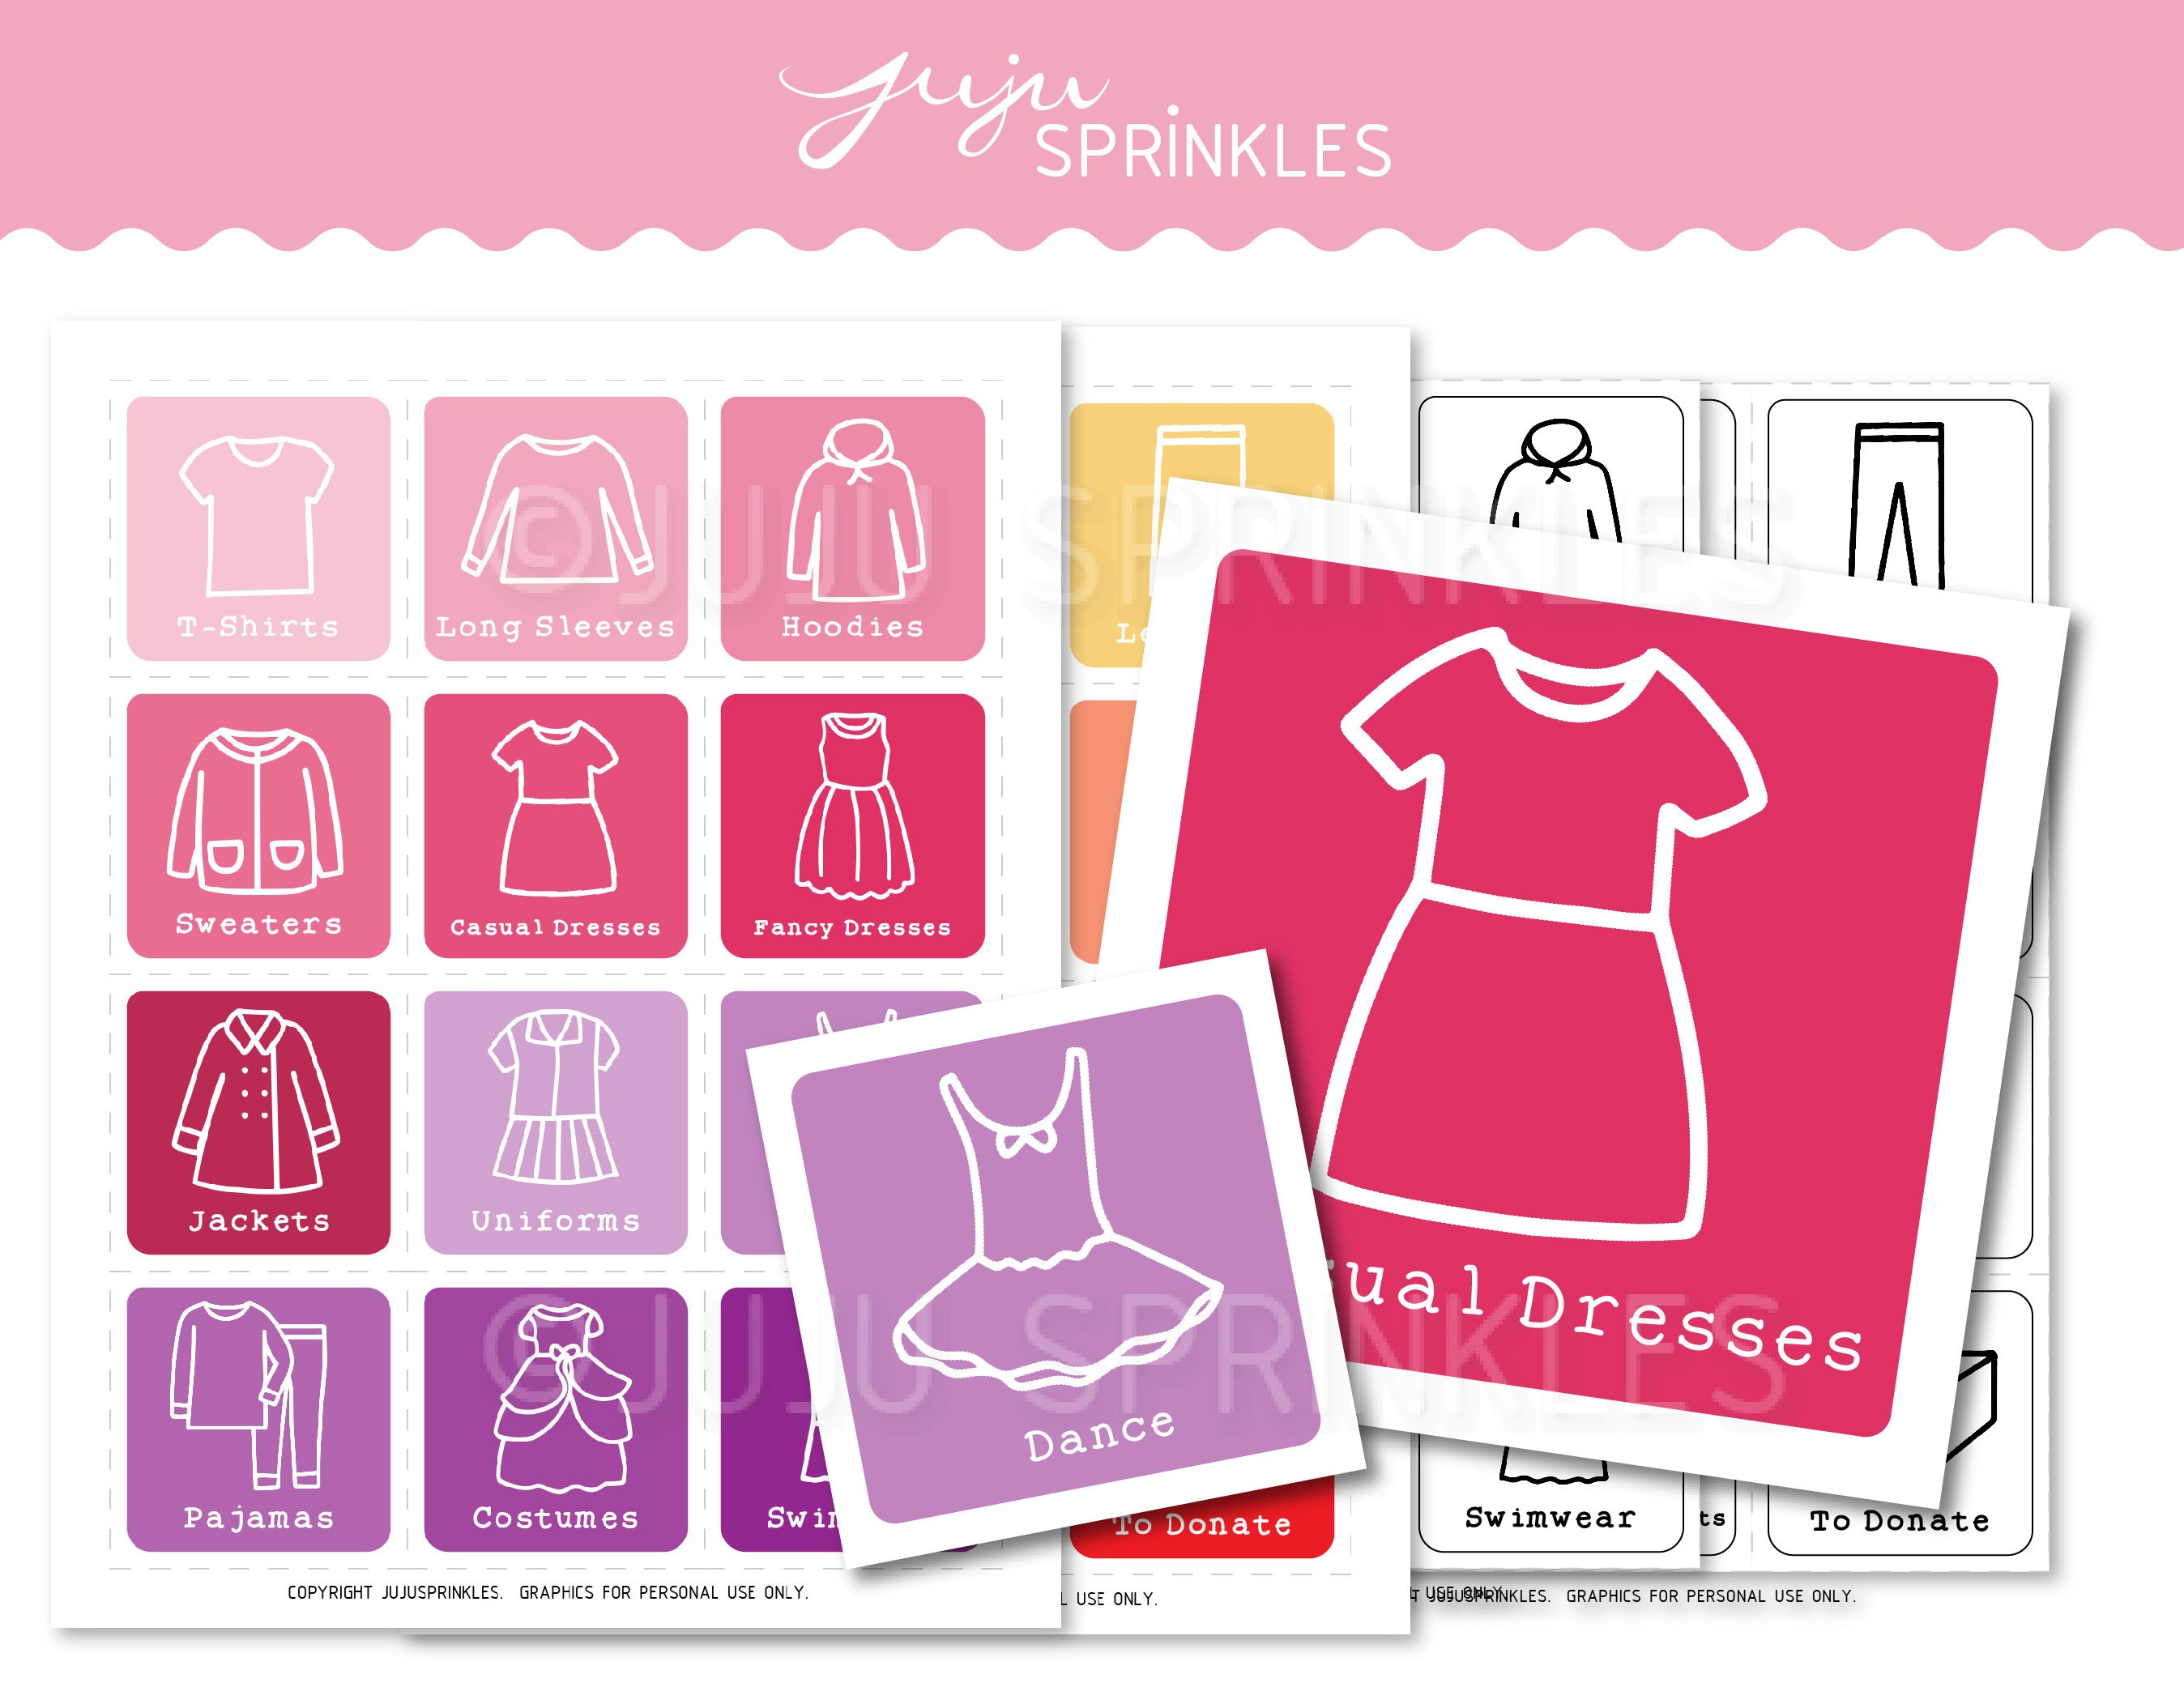 image relating to Printable Clothing Labels titled Young children Apparel Closet Organizers Printable Woman Clothes Labels Konmari Labels Kids Drawer Enterprise Labels Storage Coloring Internet pages